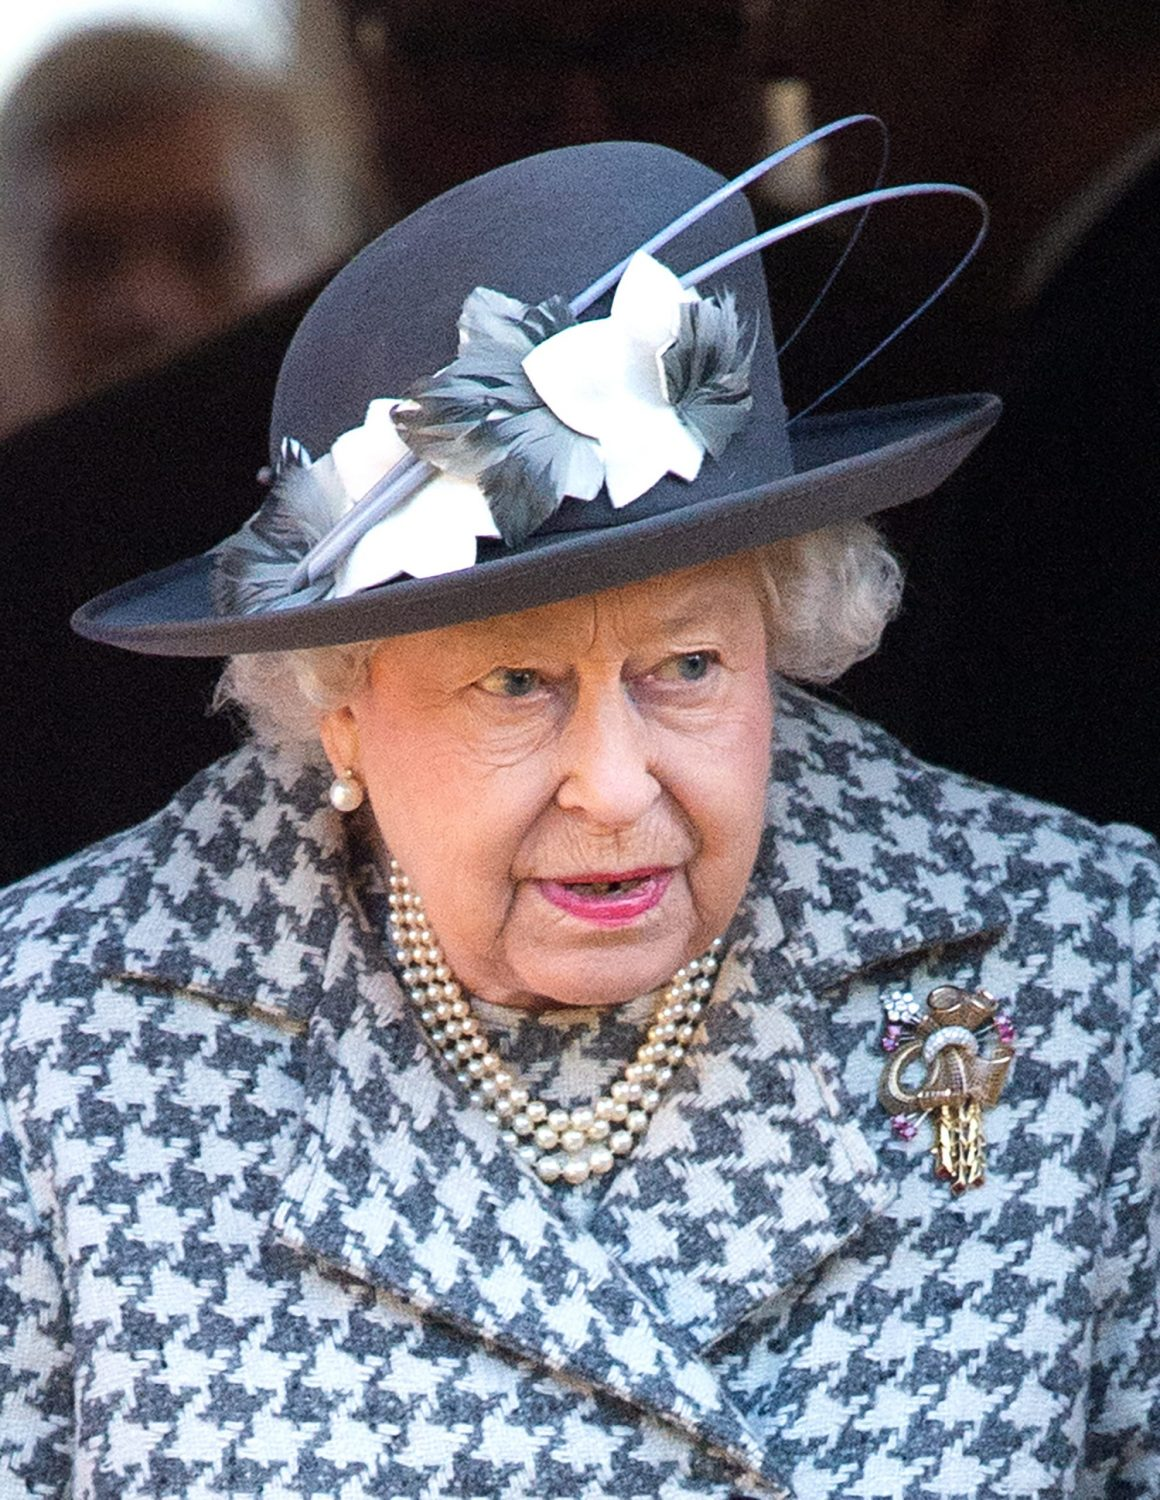 The Queen releases a message about coronavirus